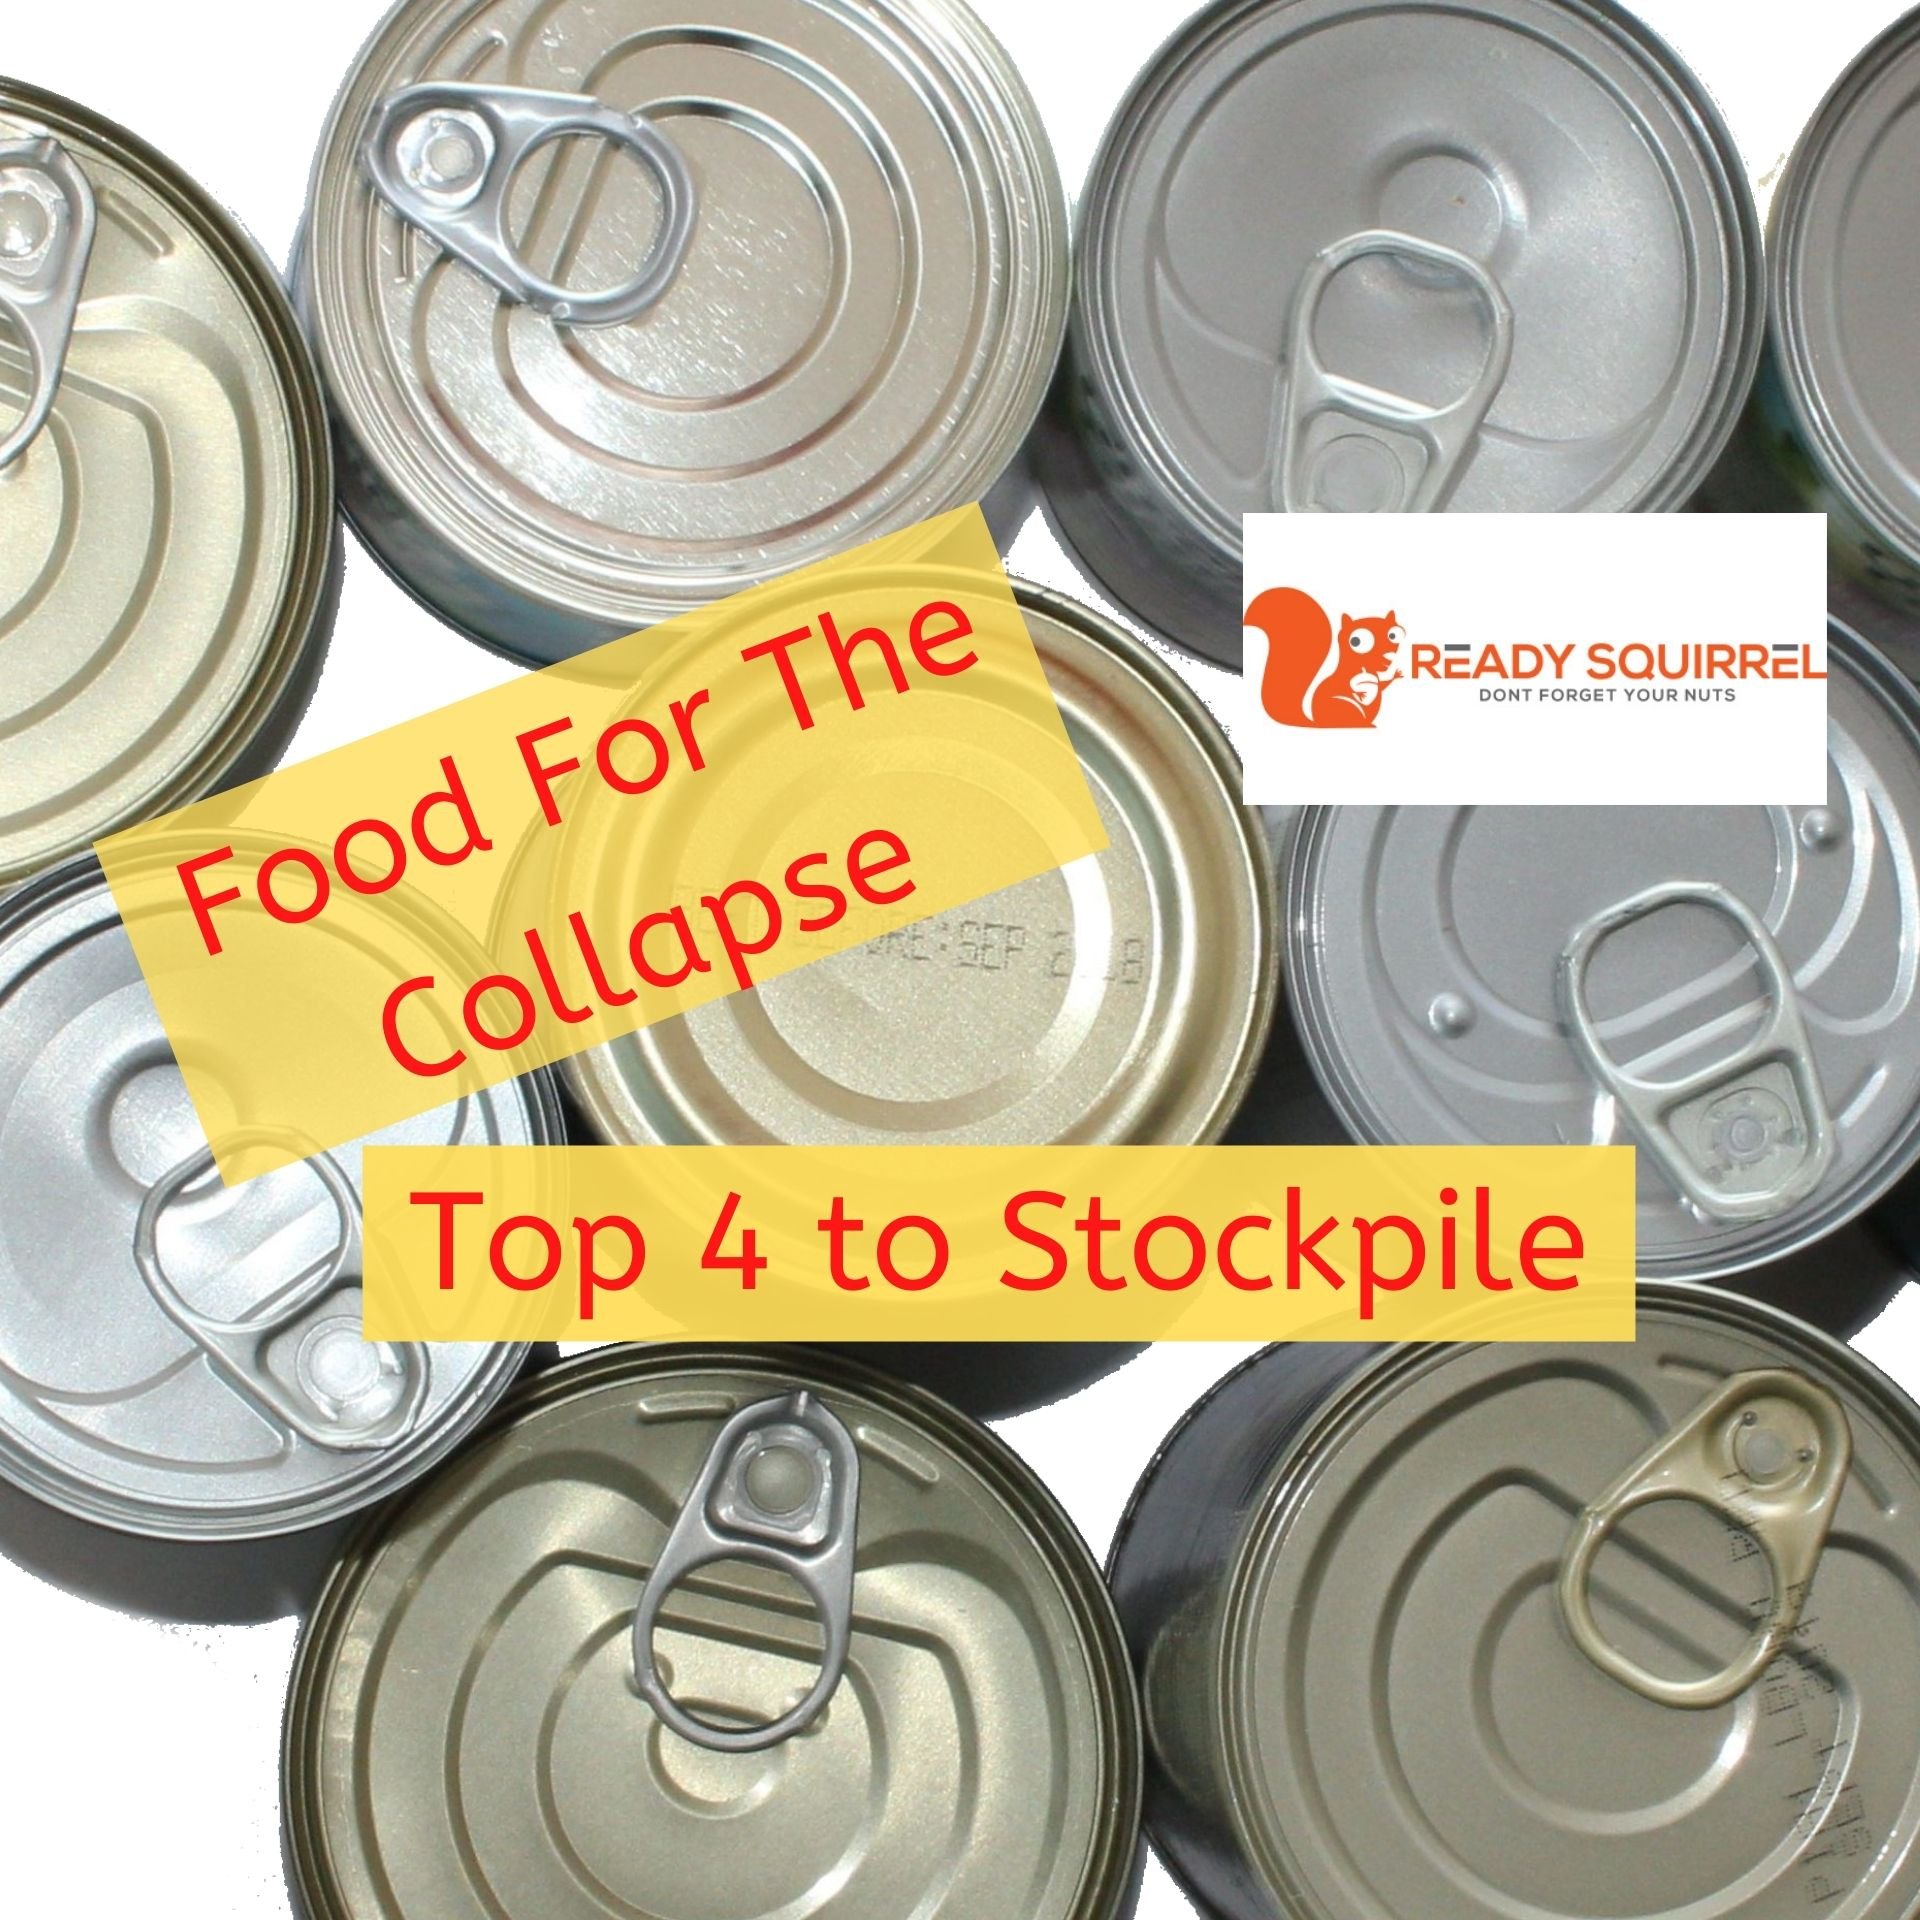 Food for the Collapse: Top 4 to Stockpile